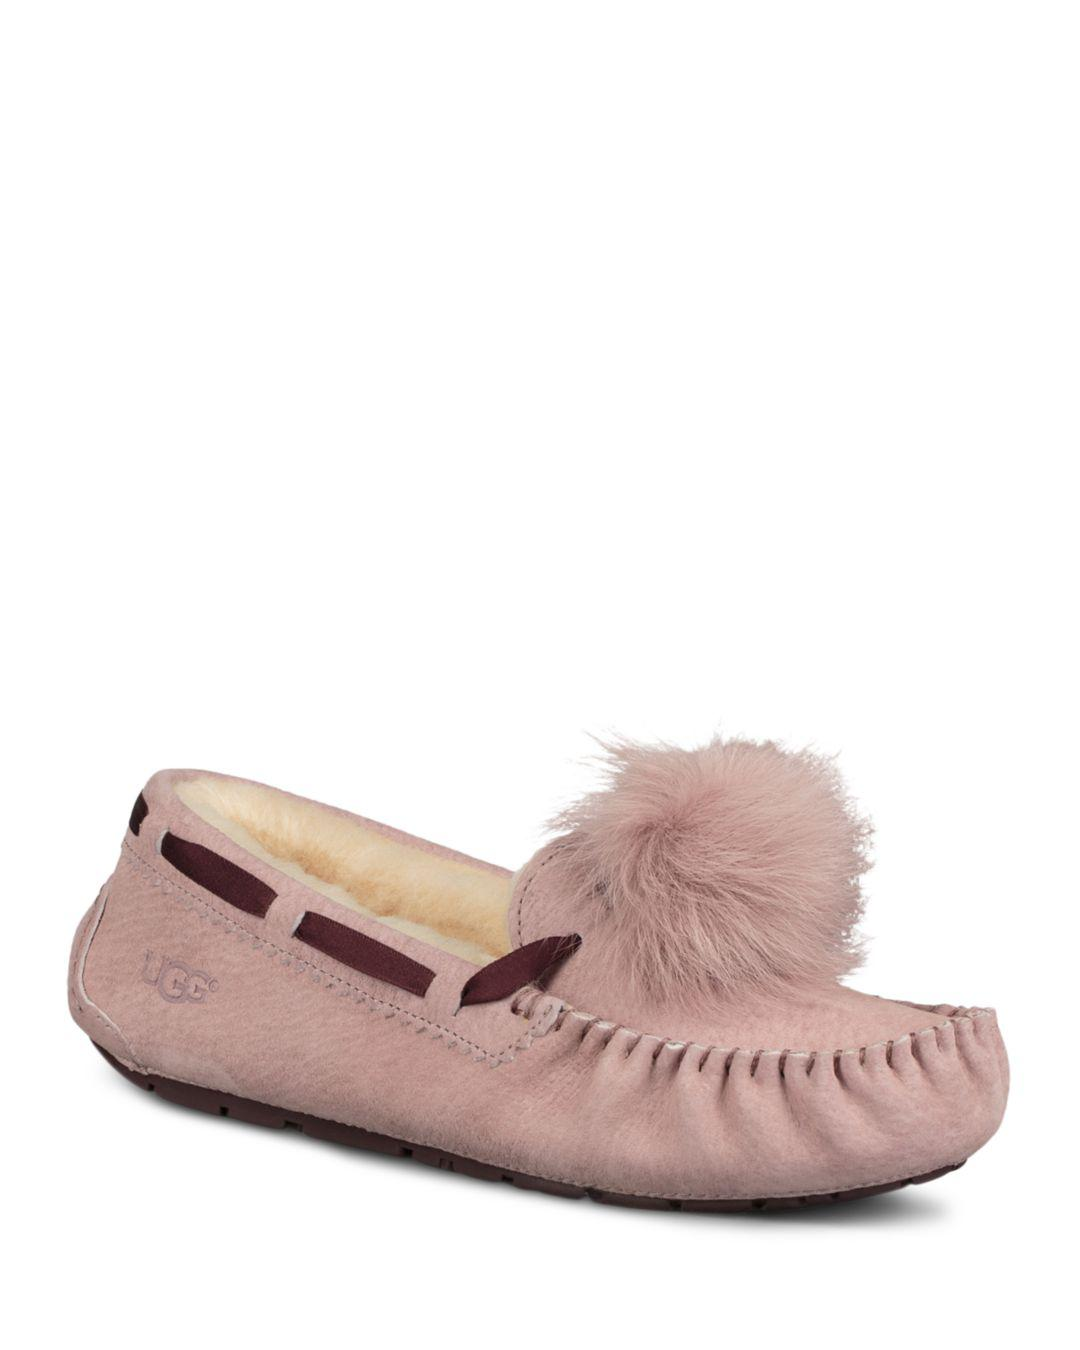 7f0108310c0 Lyst - UGG Dakota Fur Pom-pom Suede Loafers in Pink - Save 43%